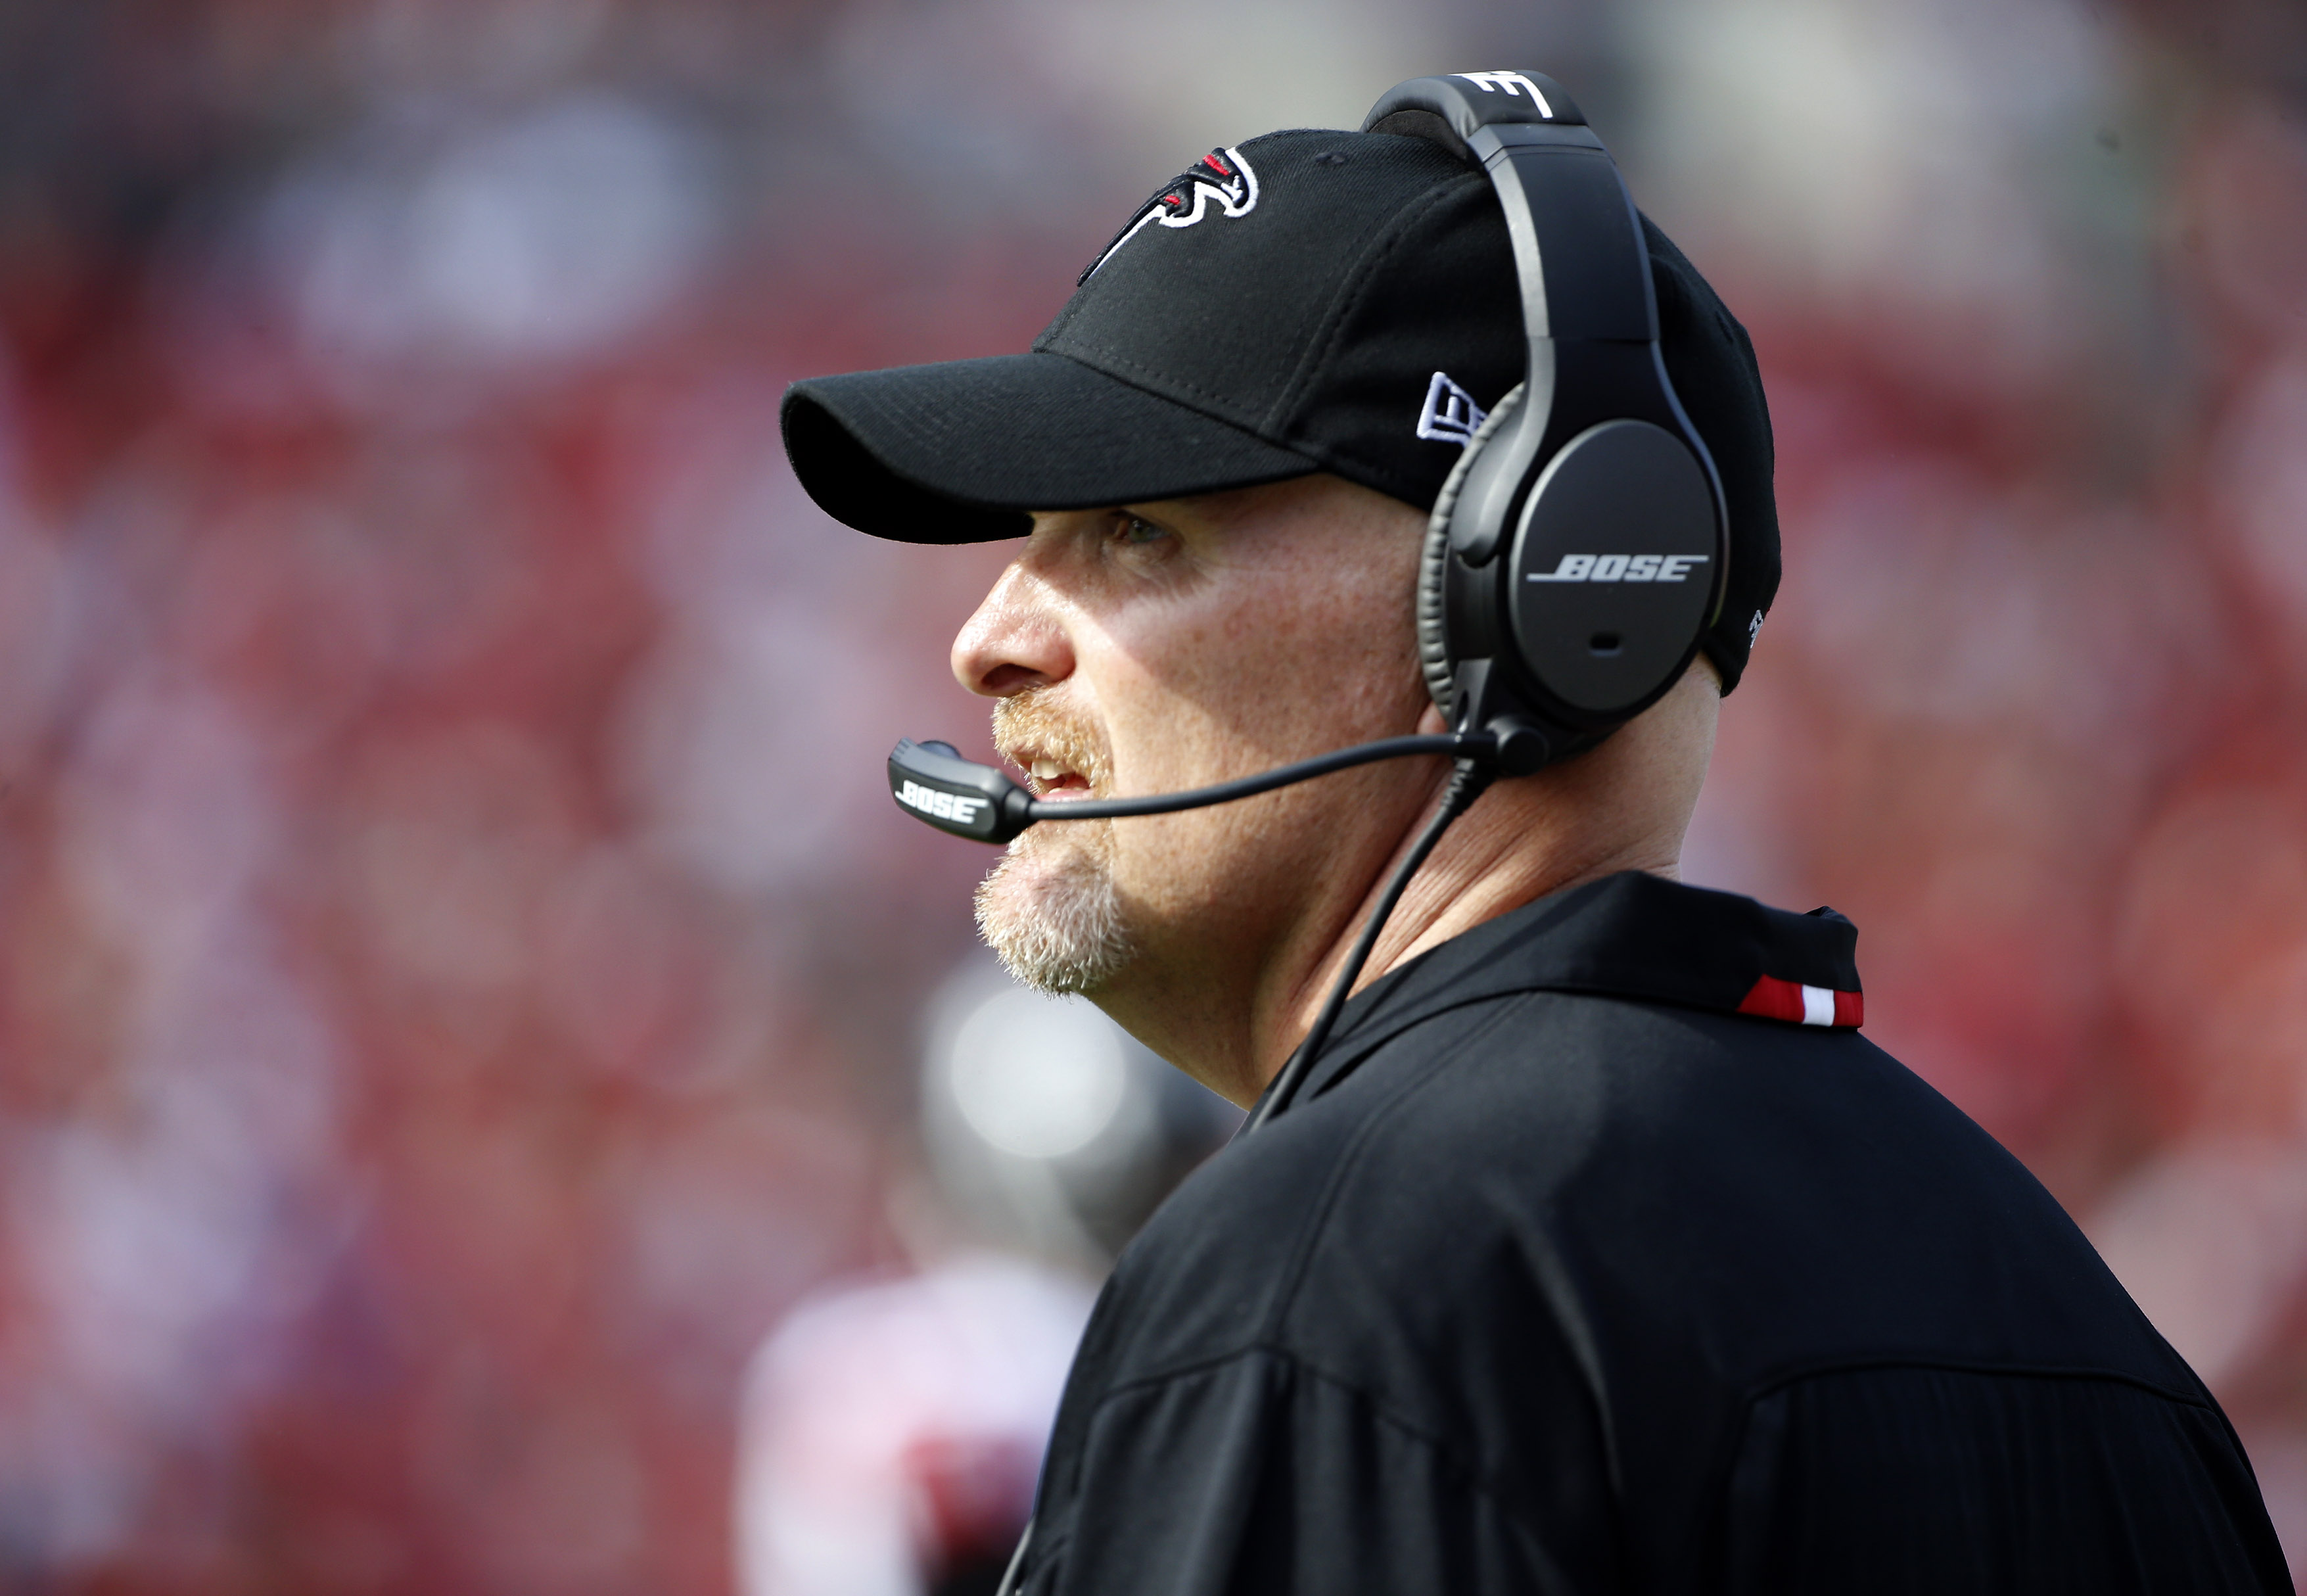 In this photo taken on Dec. 6, 2015, Atlanta Falcons head coach Dan Quinn watches the first quarter of an NFL football game against the Tampa Bay Buccaneers, in Tampa, Fla. Quinn counted 15 missed tackles two weeks ago and double-digit whiffs for the Atla